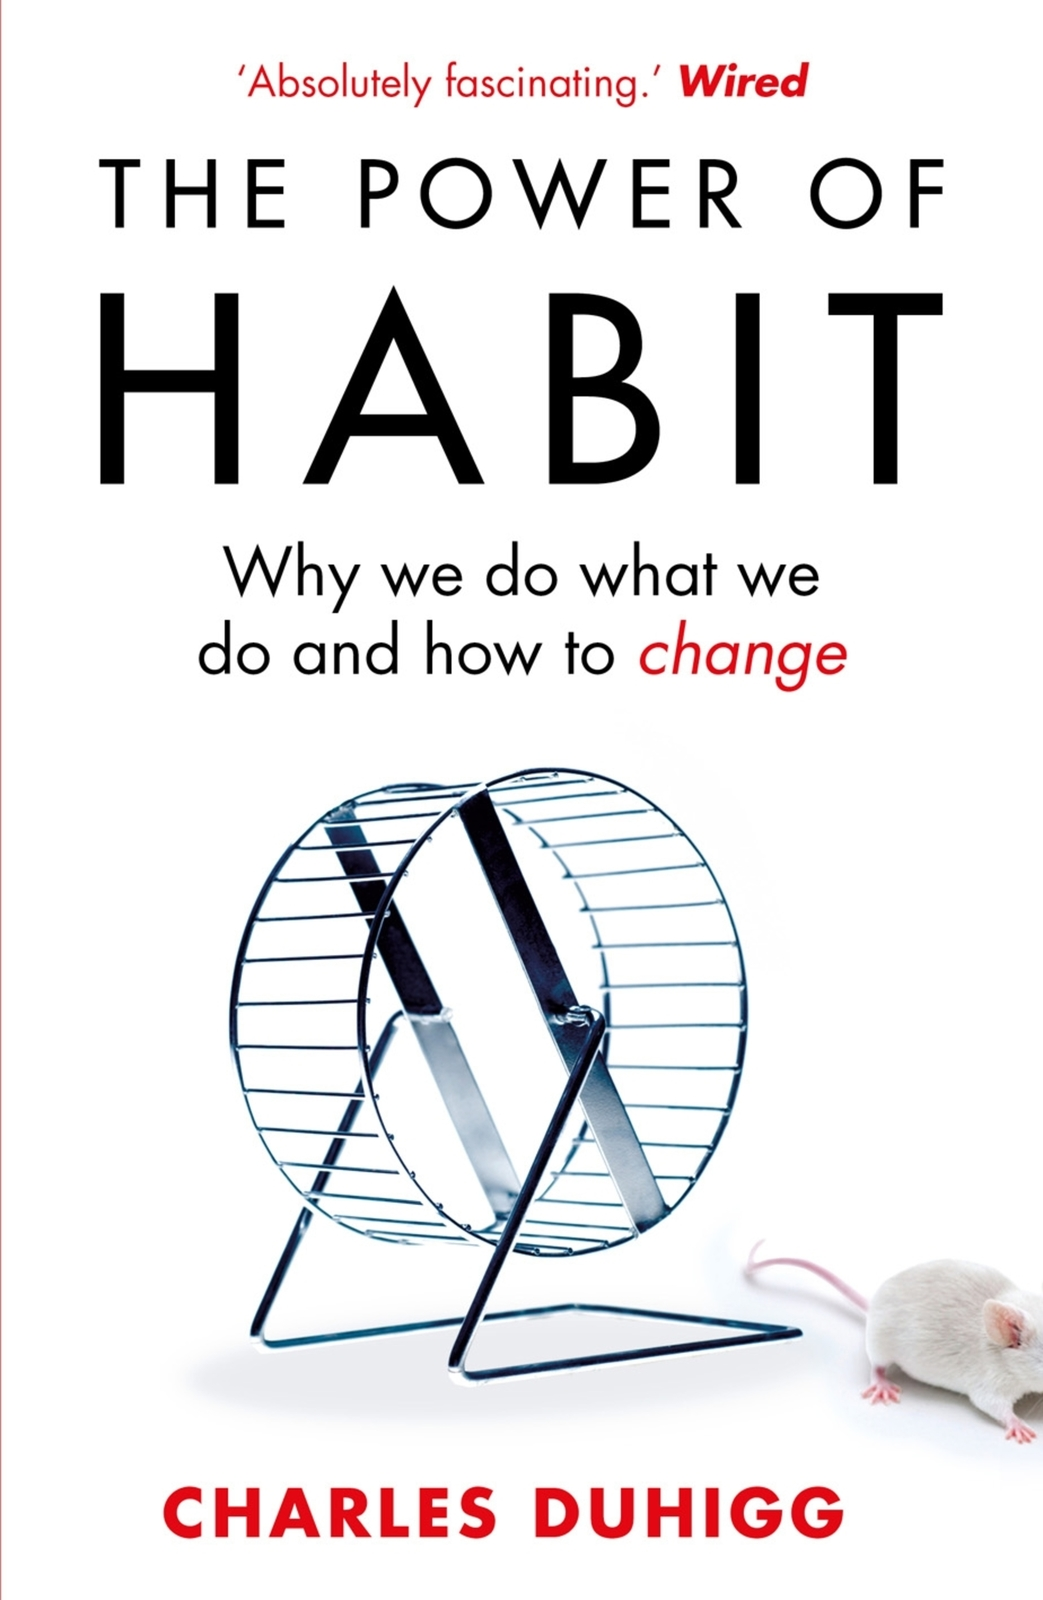 The Power of Habit by Charles Duhigg image